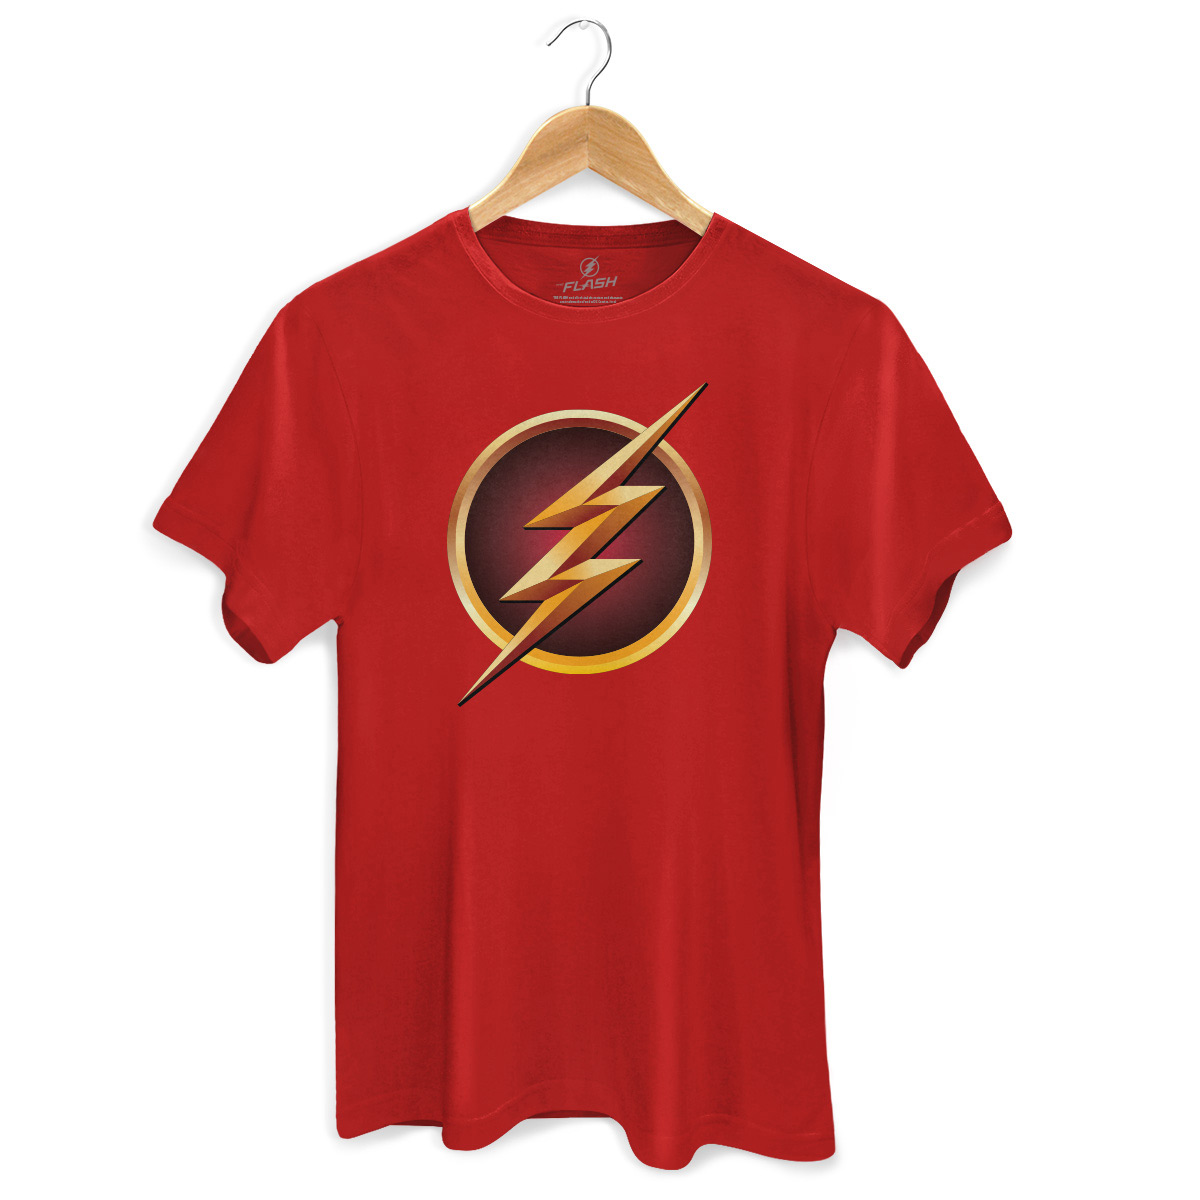 Camiseta Masculina The Flash Serie Logo Gold